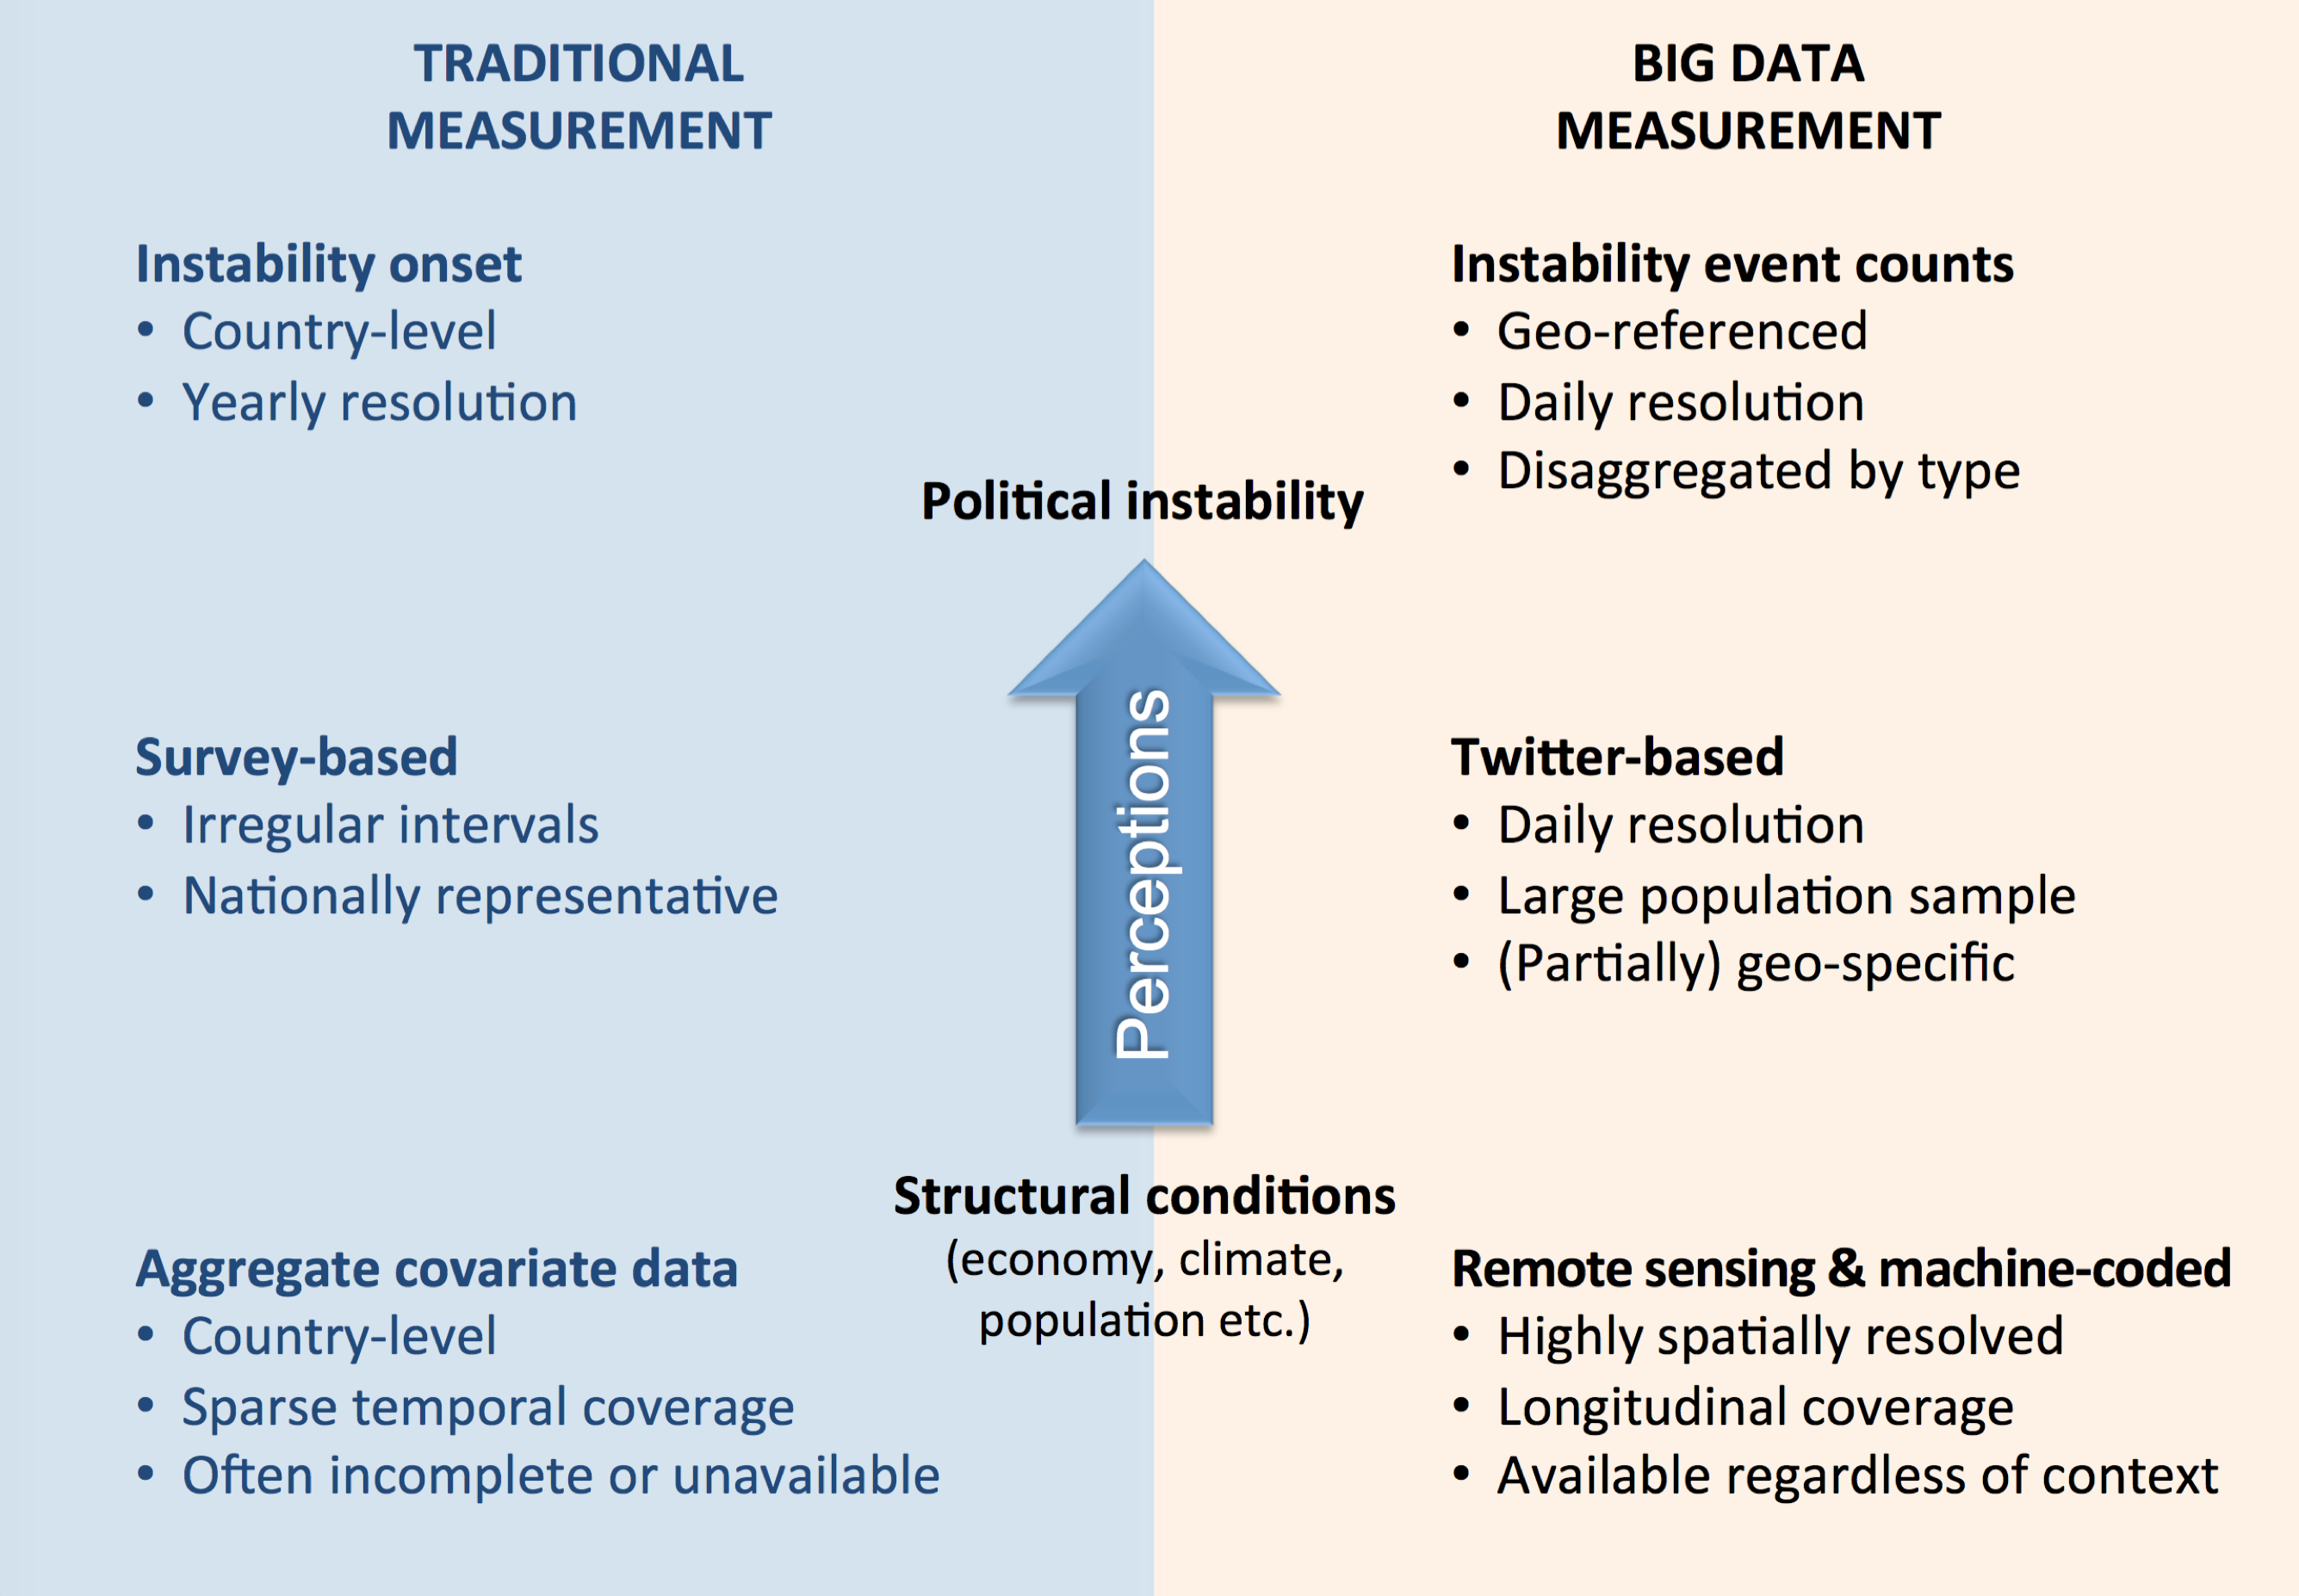 Big Data for Monitoring Political Instability